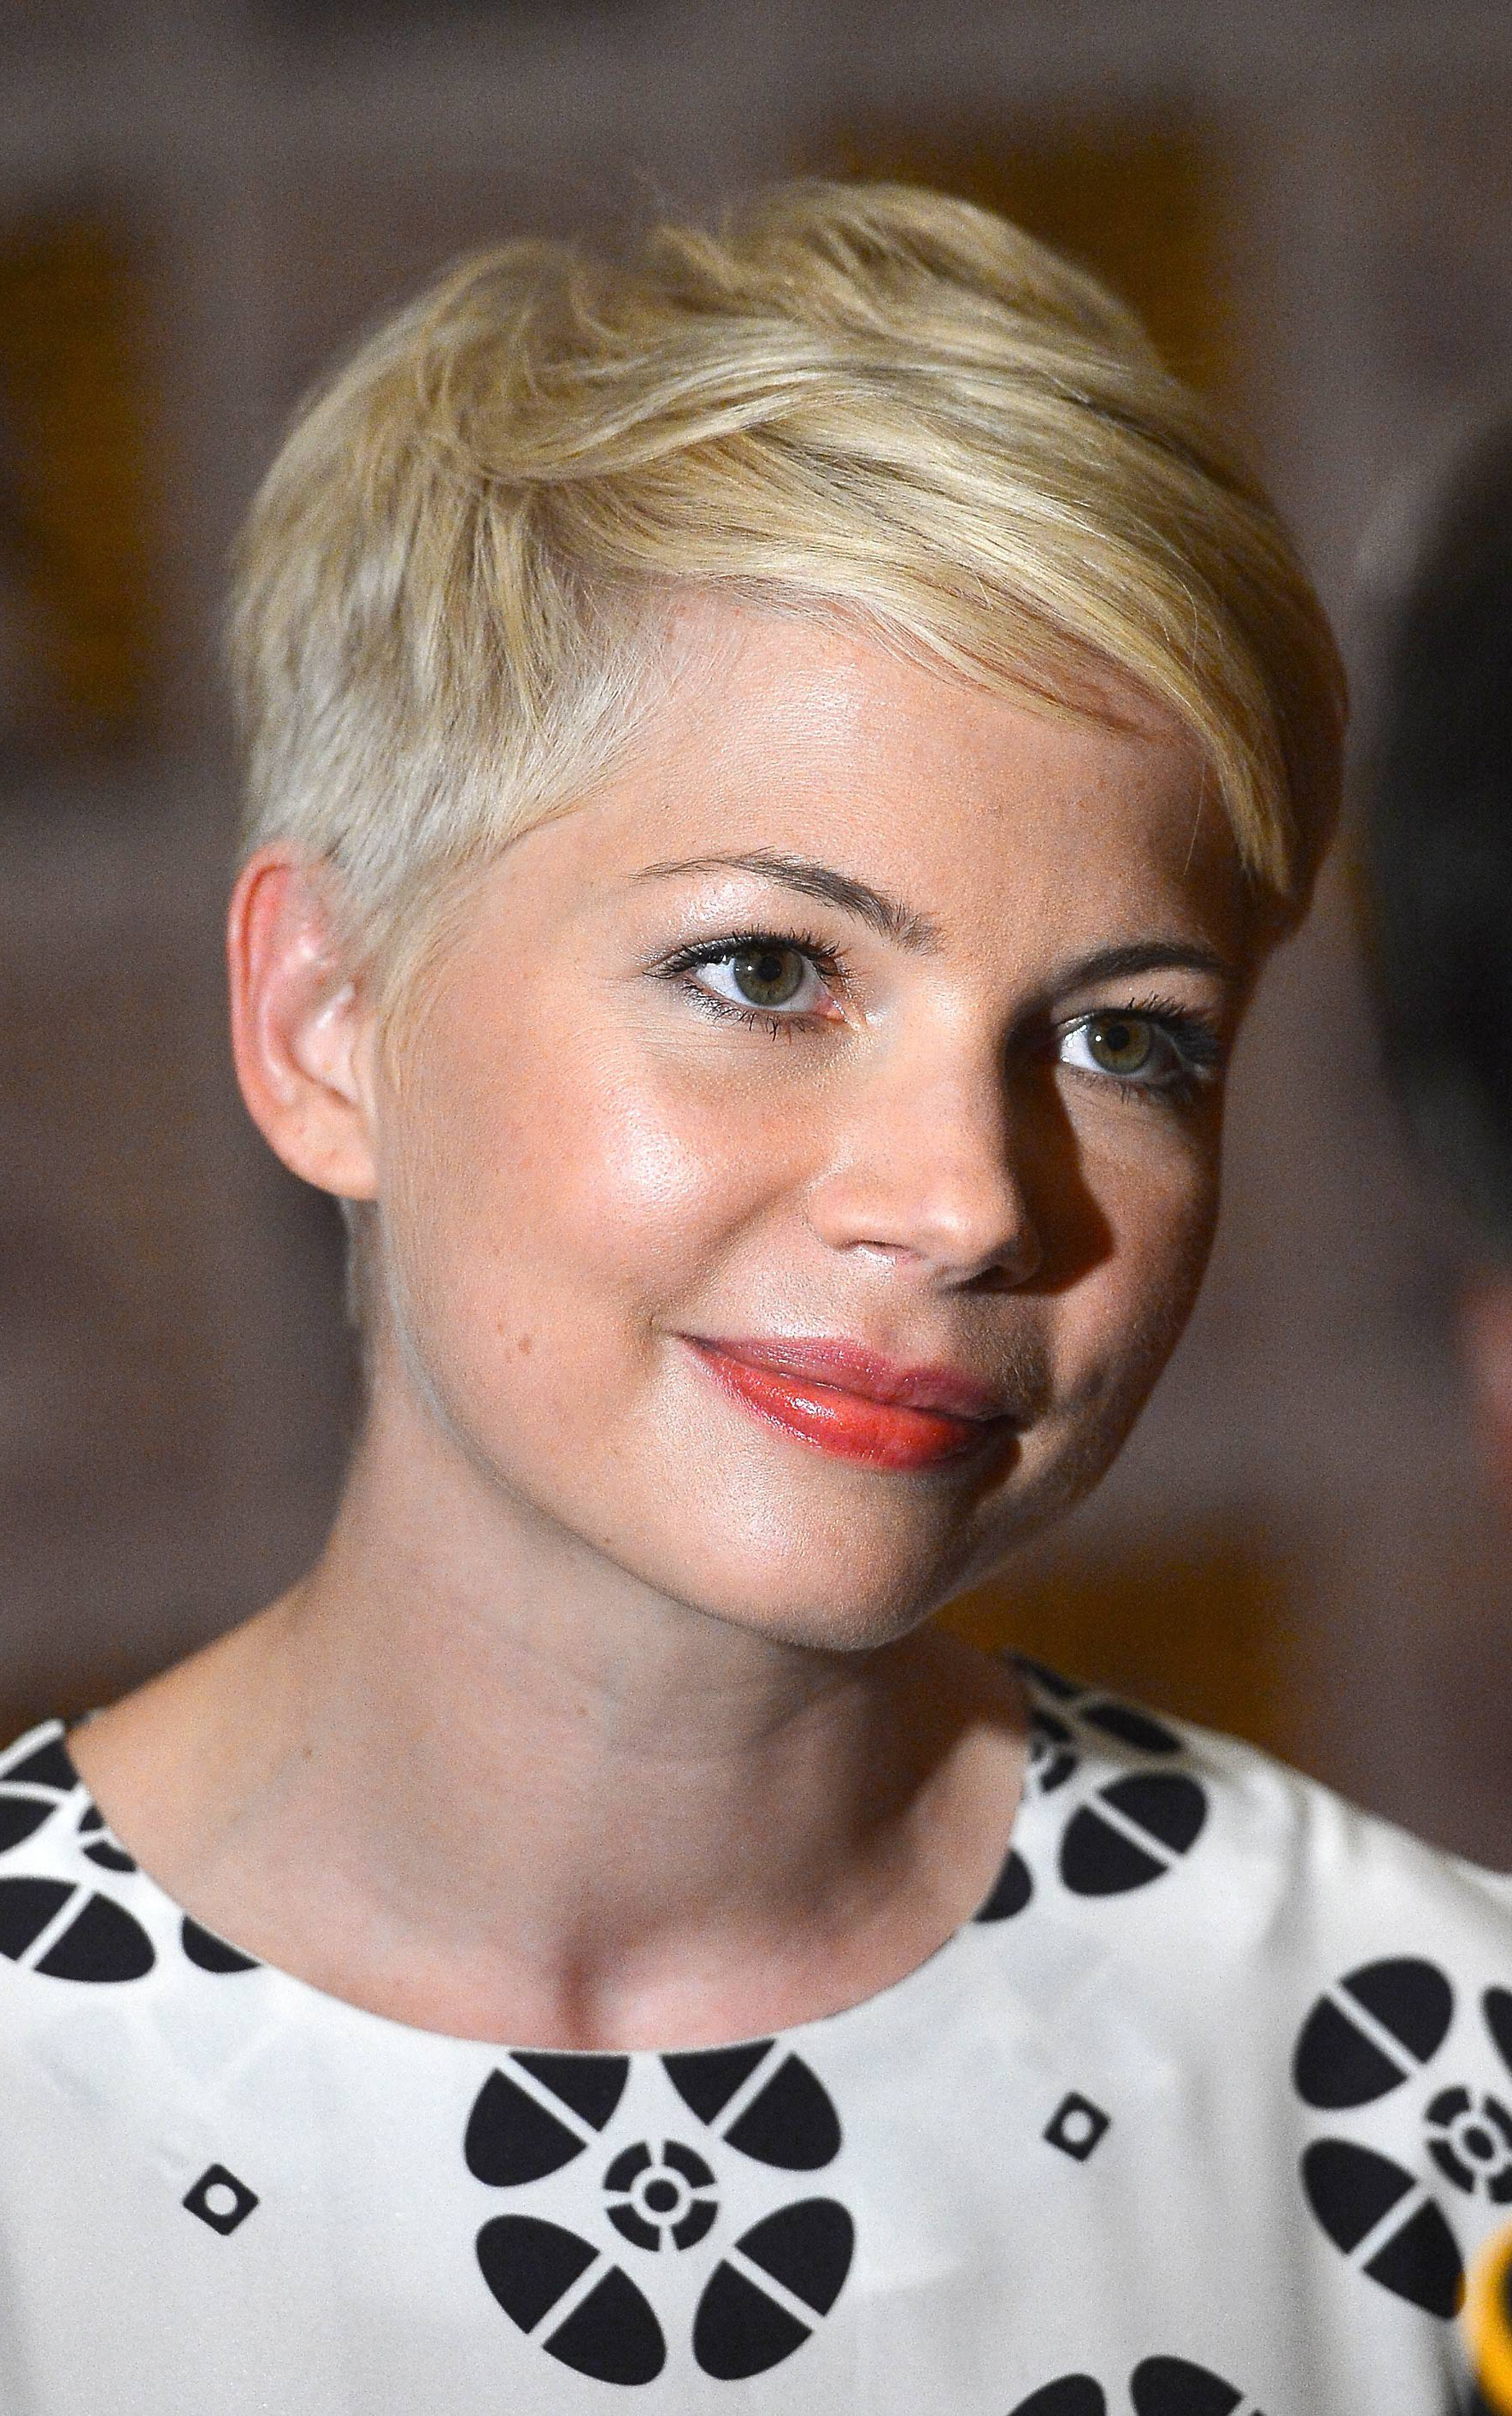 20 Best Short Haircuts For Women – The Xerxes Inside Short Hairstyles For Large Noses (View 21 of 25)